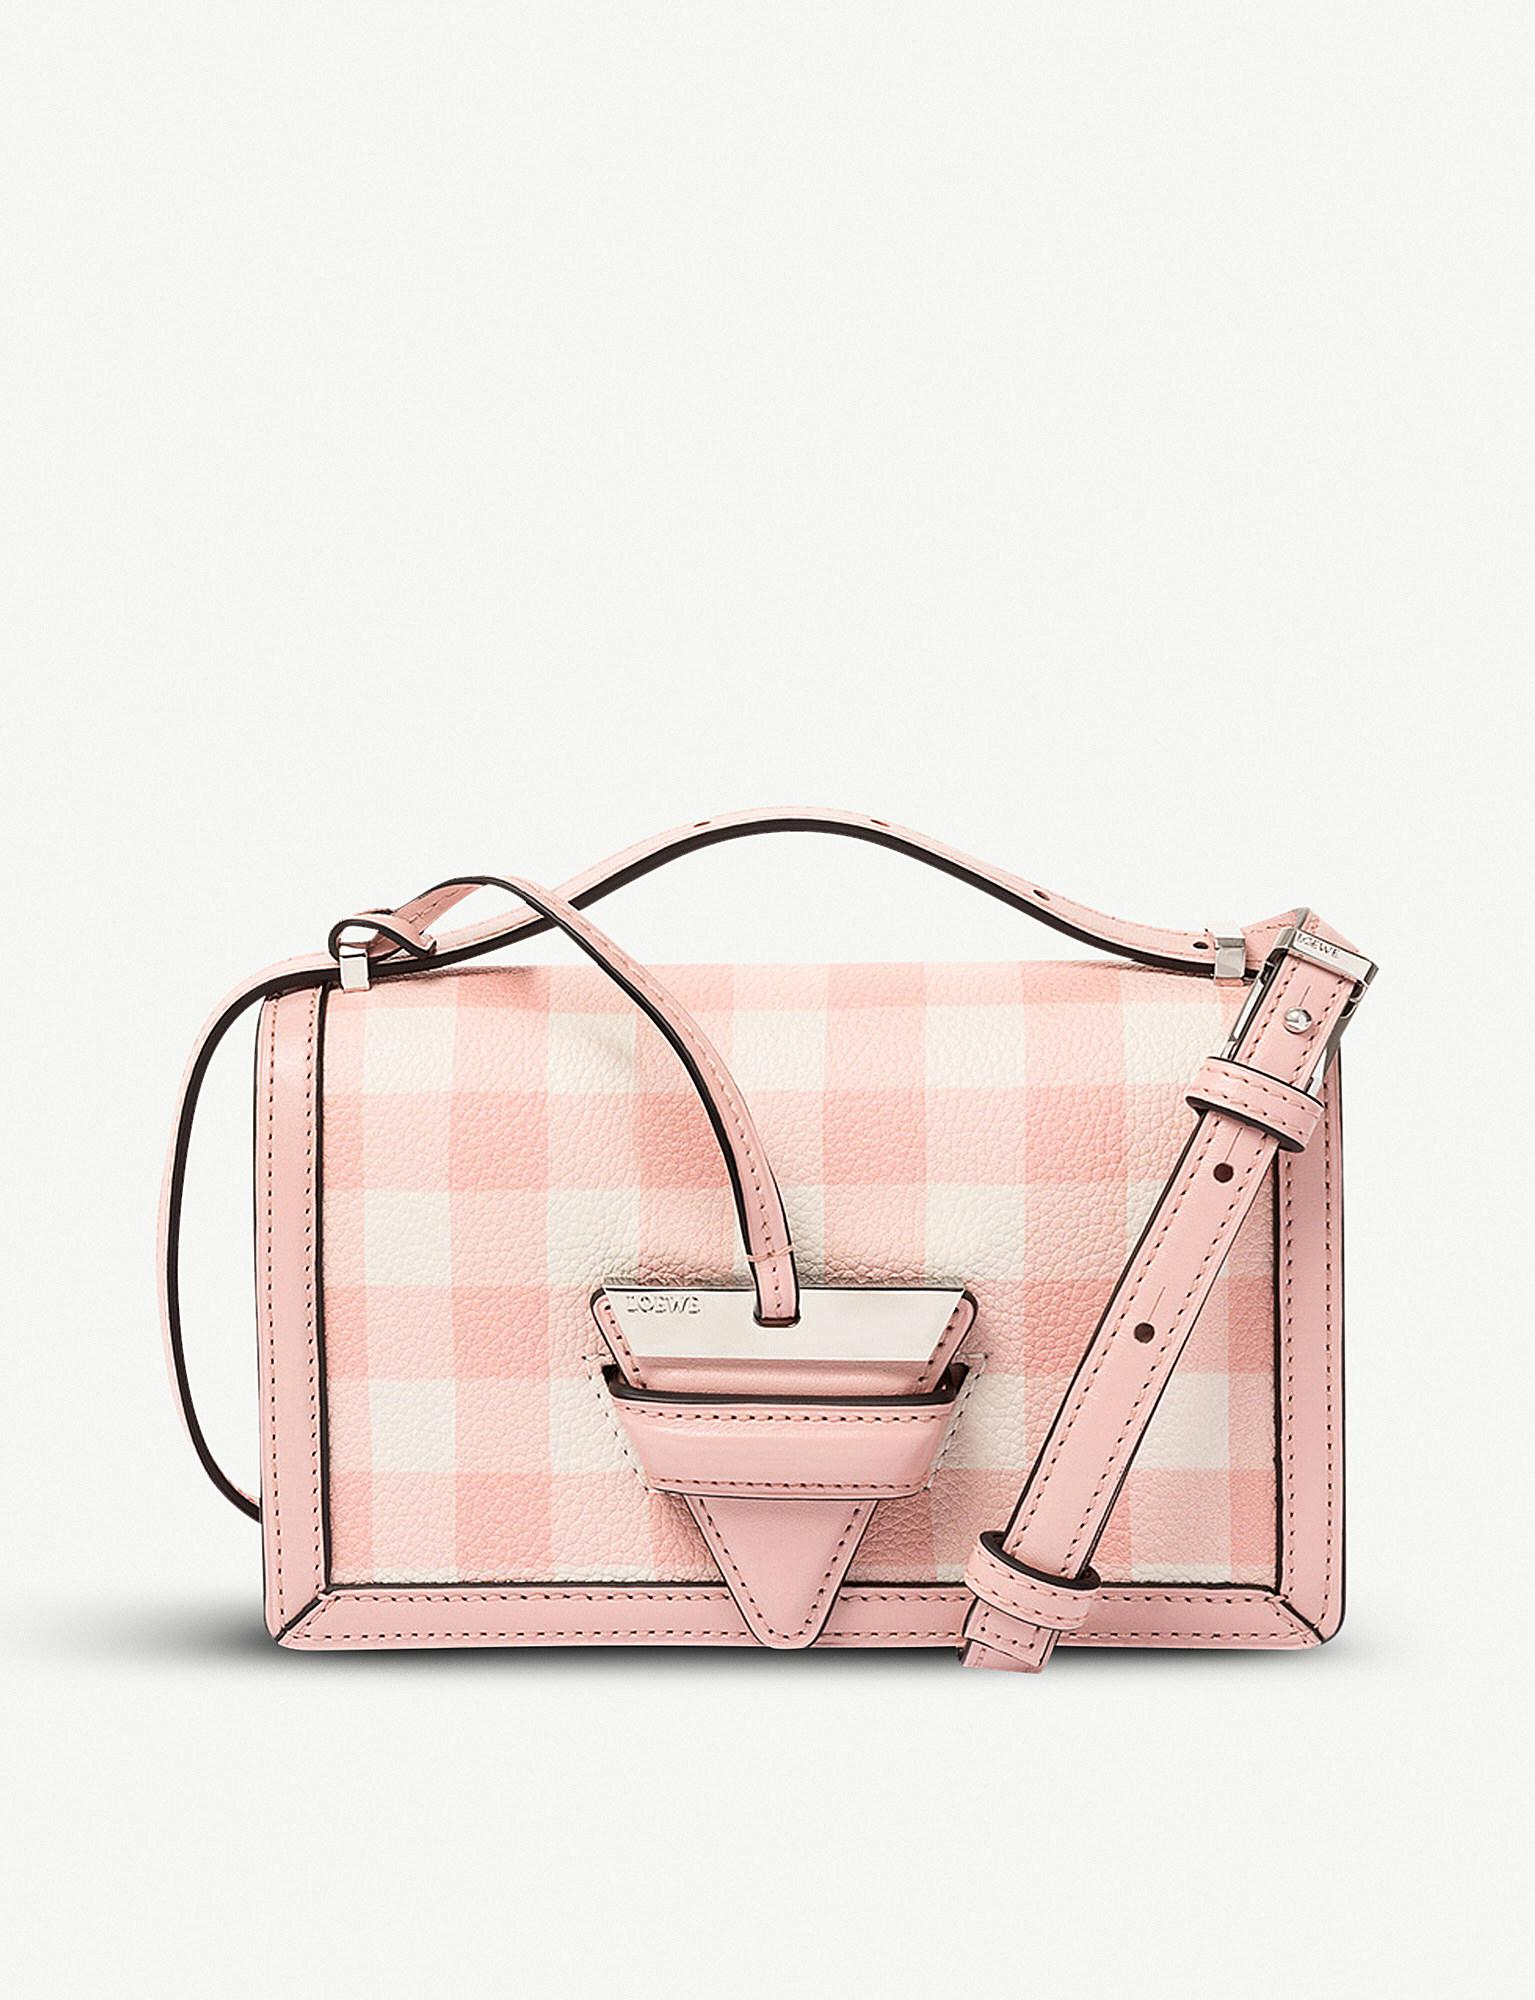 Barcelona Gingham Small Bag in Salmon Soft Grained Calf and Calf Loewe How Much For Sale KOlvk